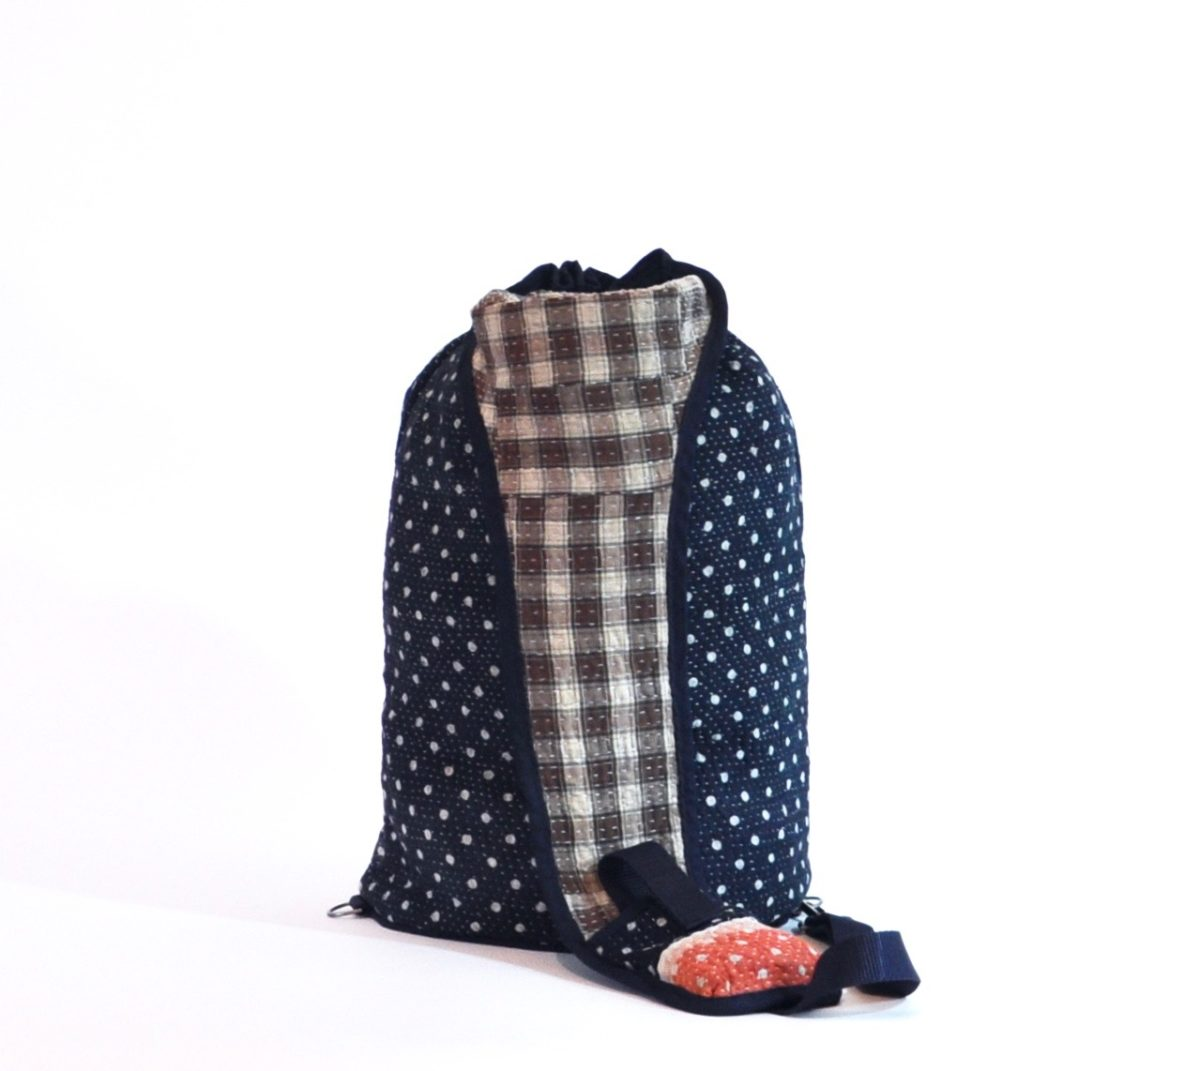 YESNESS Navy w: White Polka Dots & Red Band 5